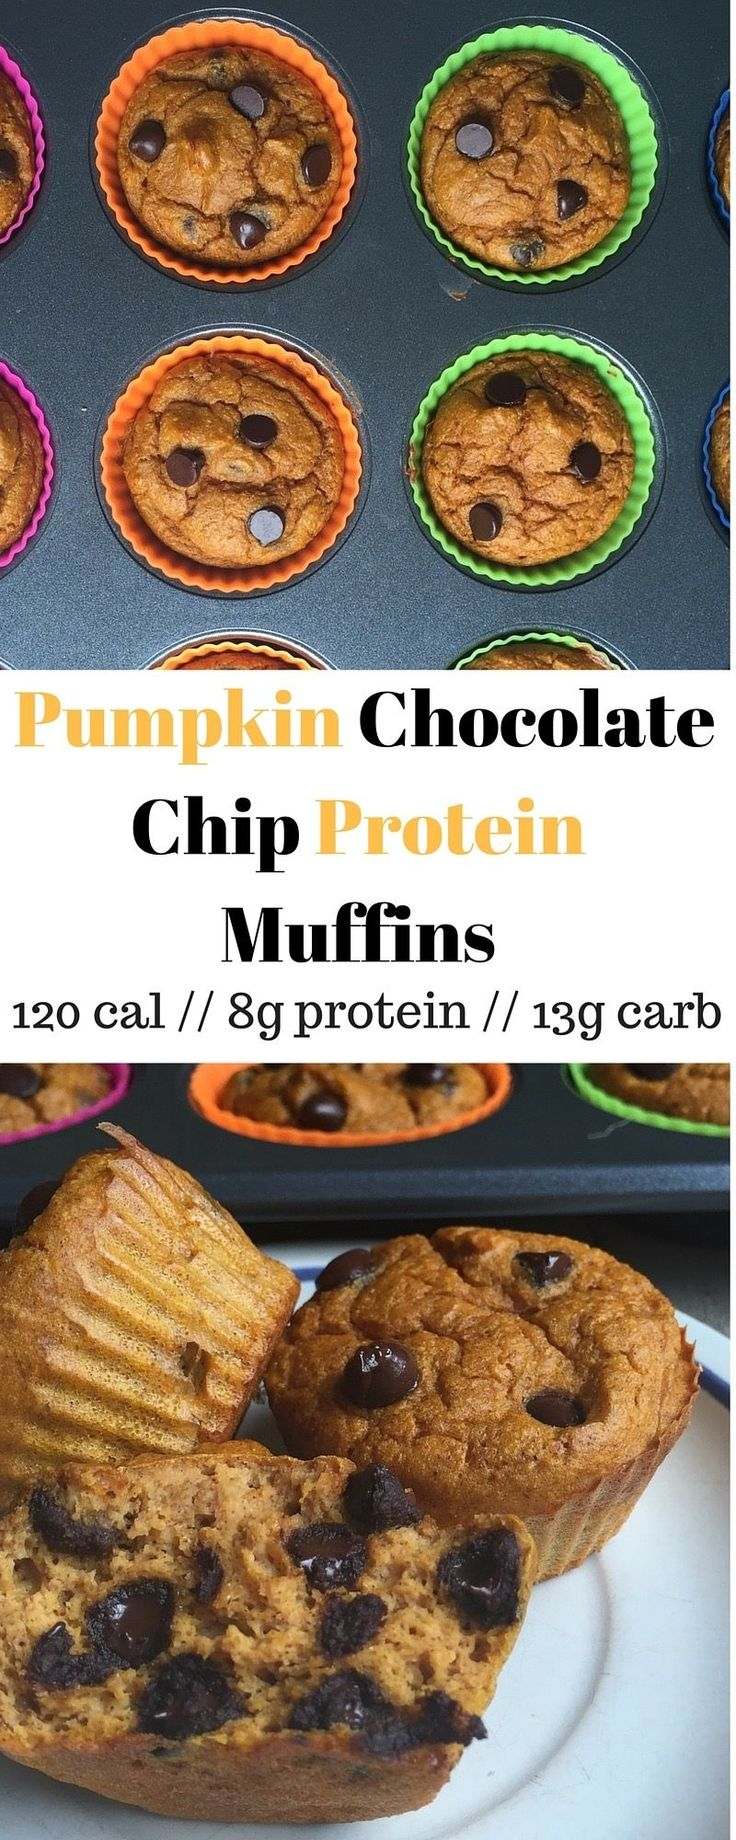 Pumpkin Chocolate Chip Protein Muffins - fall and healthy eating combined, these Pumpkin Chocolate Chip Protein Muffins are packed with protein, are low carb, and less than 120 calories - Eat the Gain